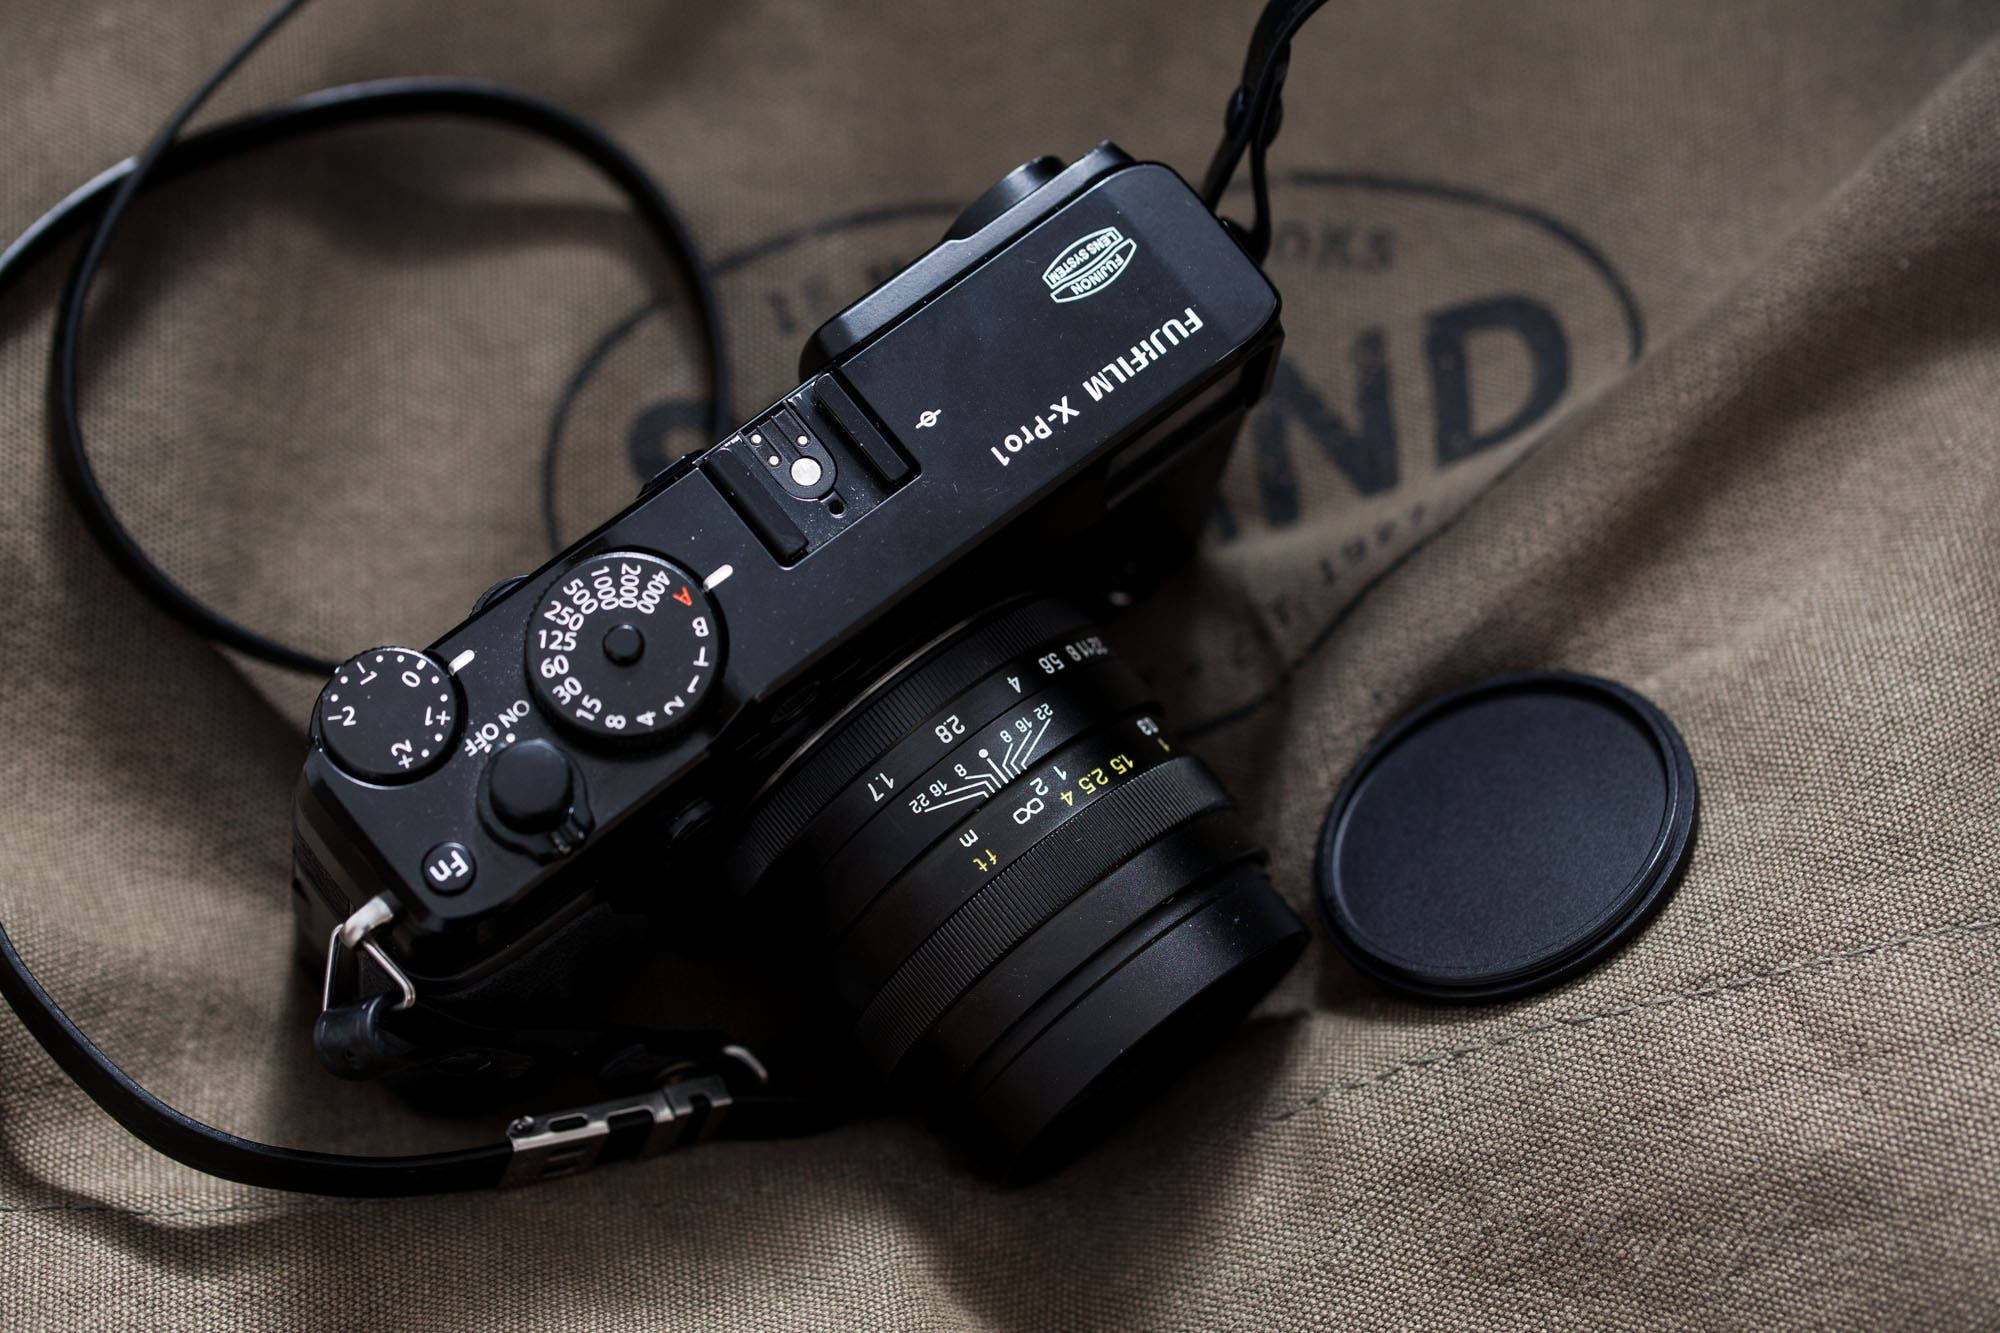 Fujifilm Pulls Firmware 3.0 for the X Pro 1, Cites Movie Problems